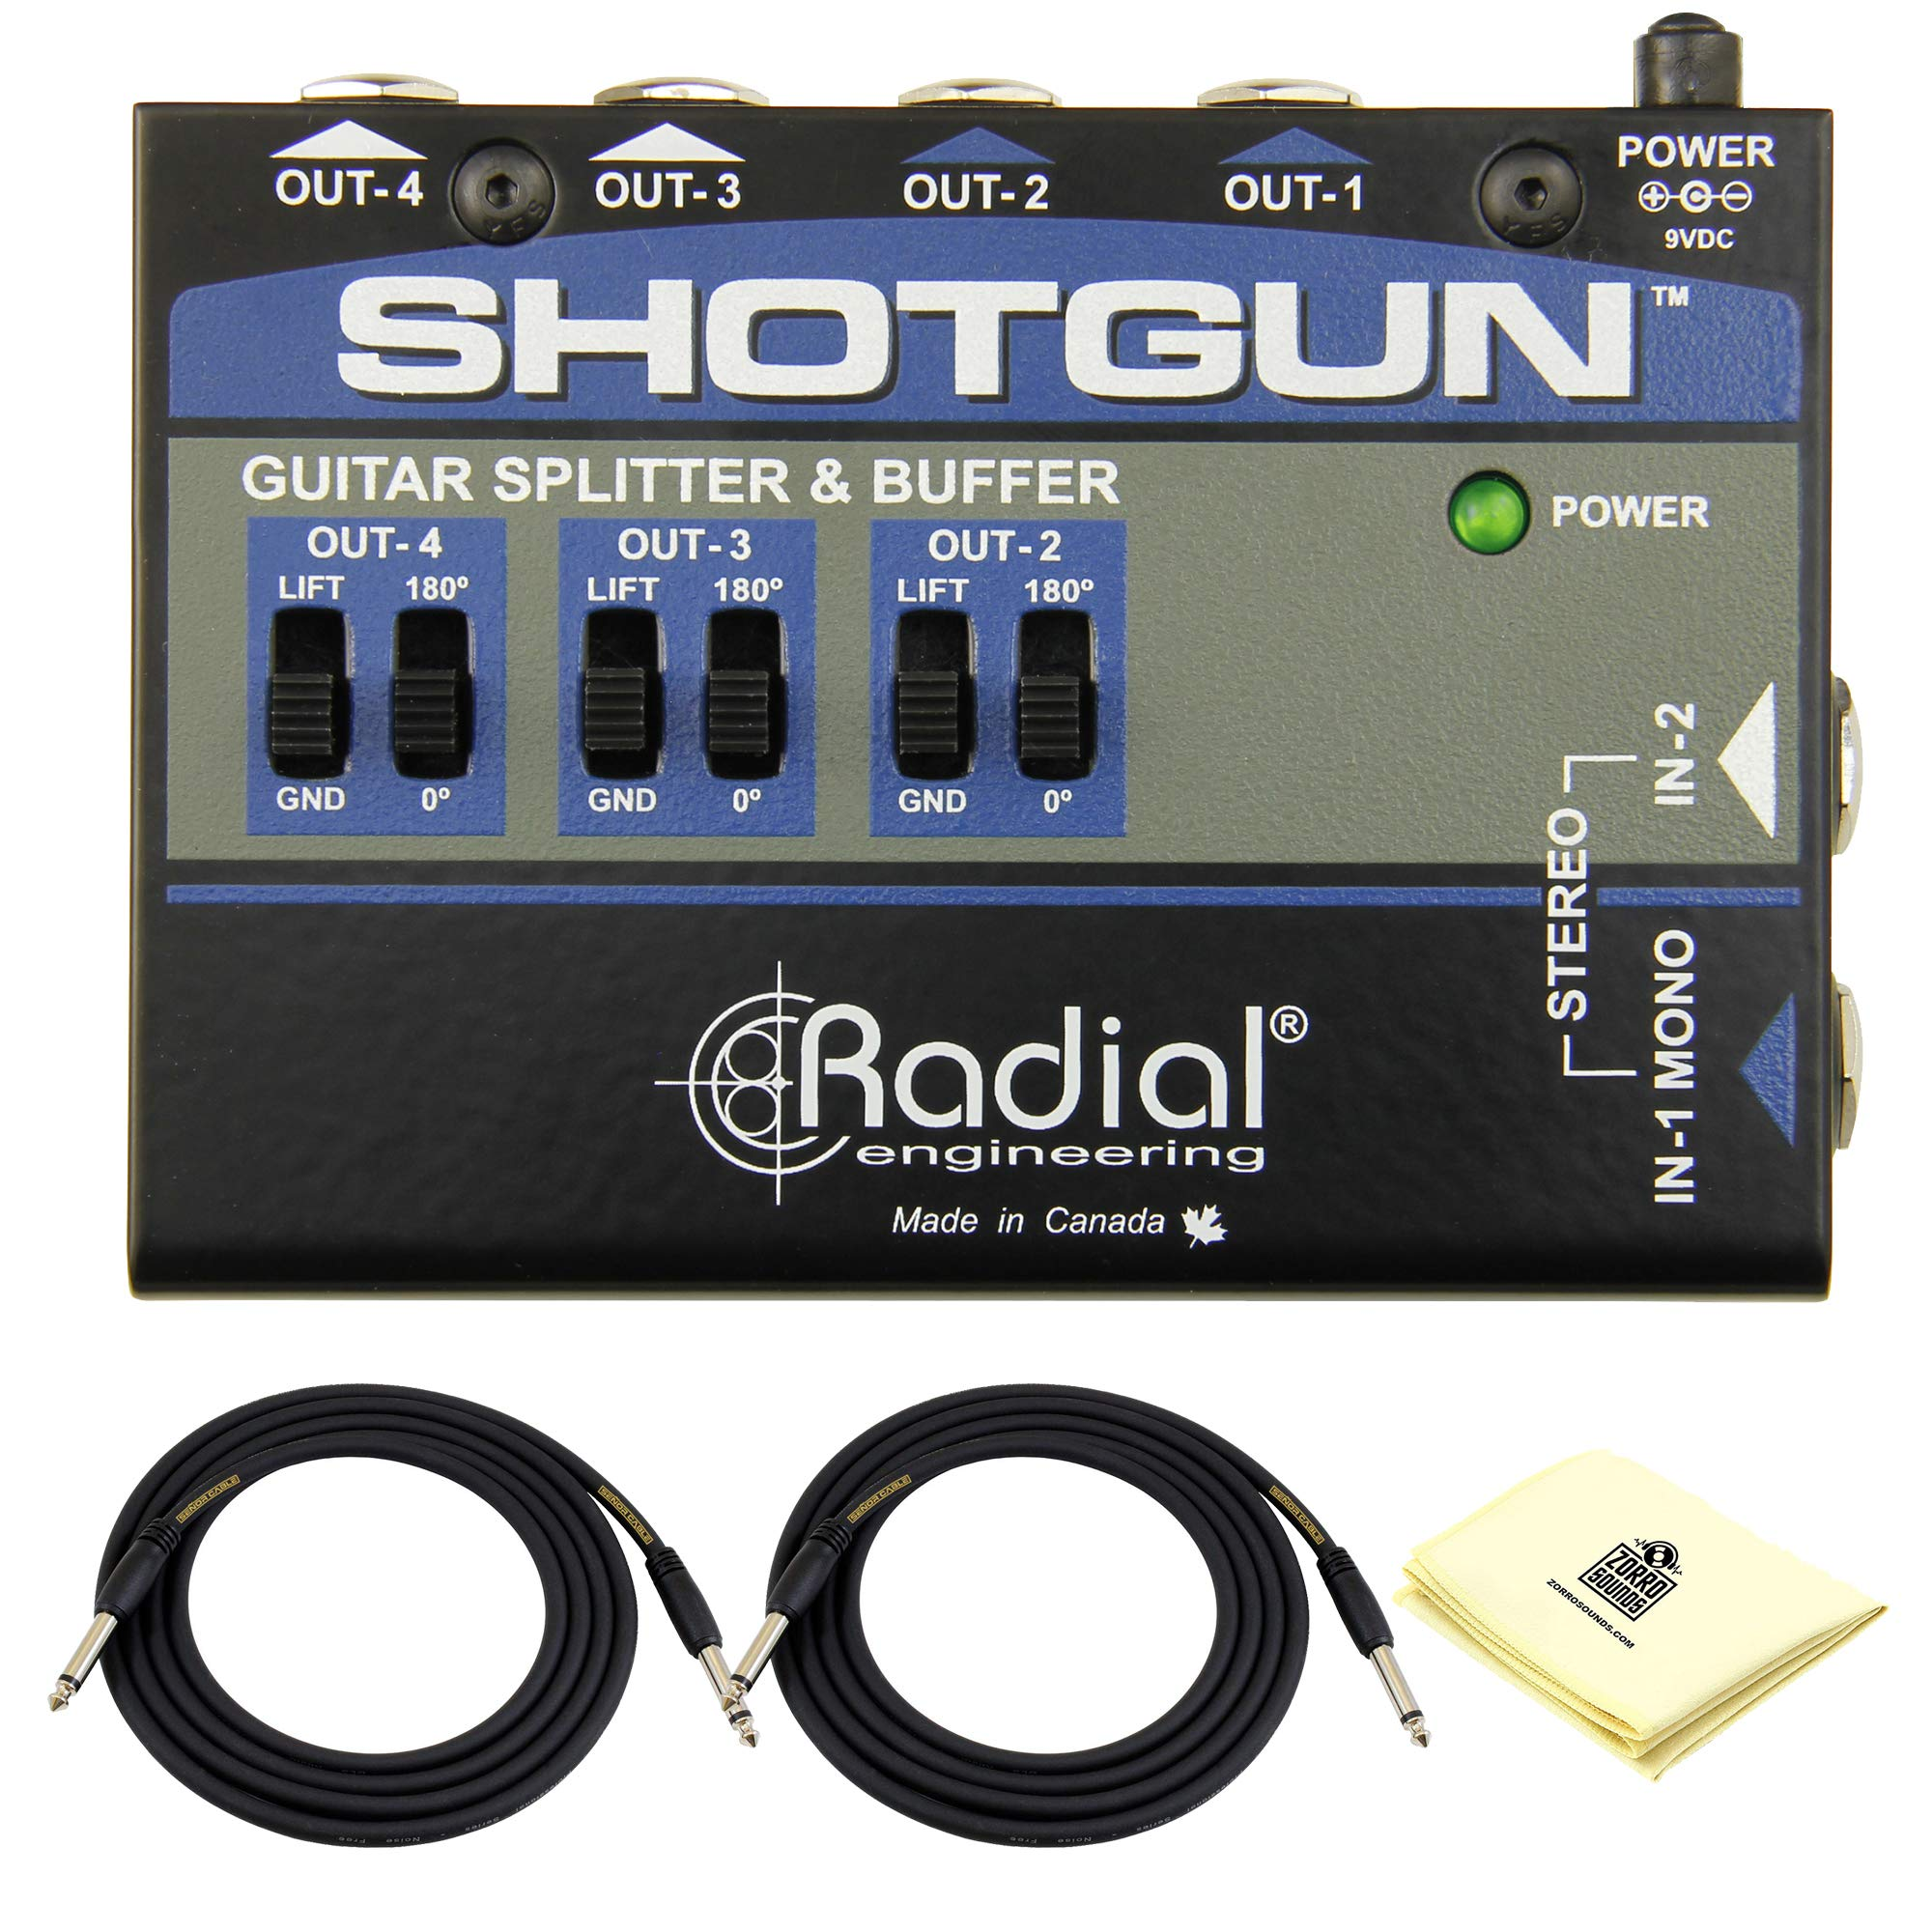 Radial Shotgun Instrument Guitar Buffer & Splitter Four Output Guitar Amp Driver with Low-noise Buffer Circuit, Isolation Transformers BUNDLE with 2 x Senor 18.6ft Instrument Cable and Zorro Cloth by Radial